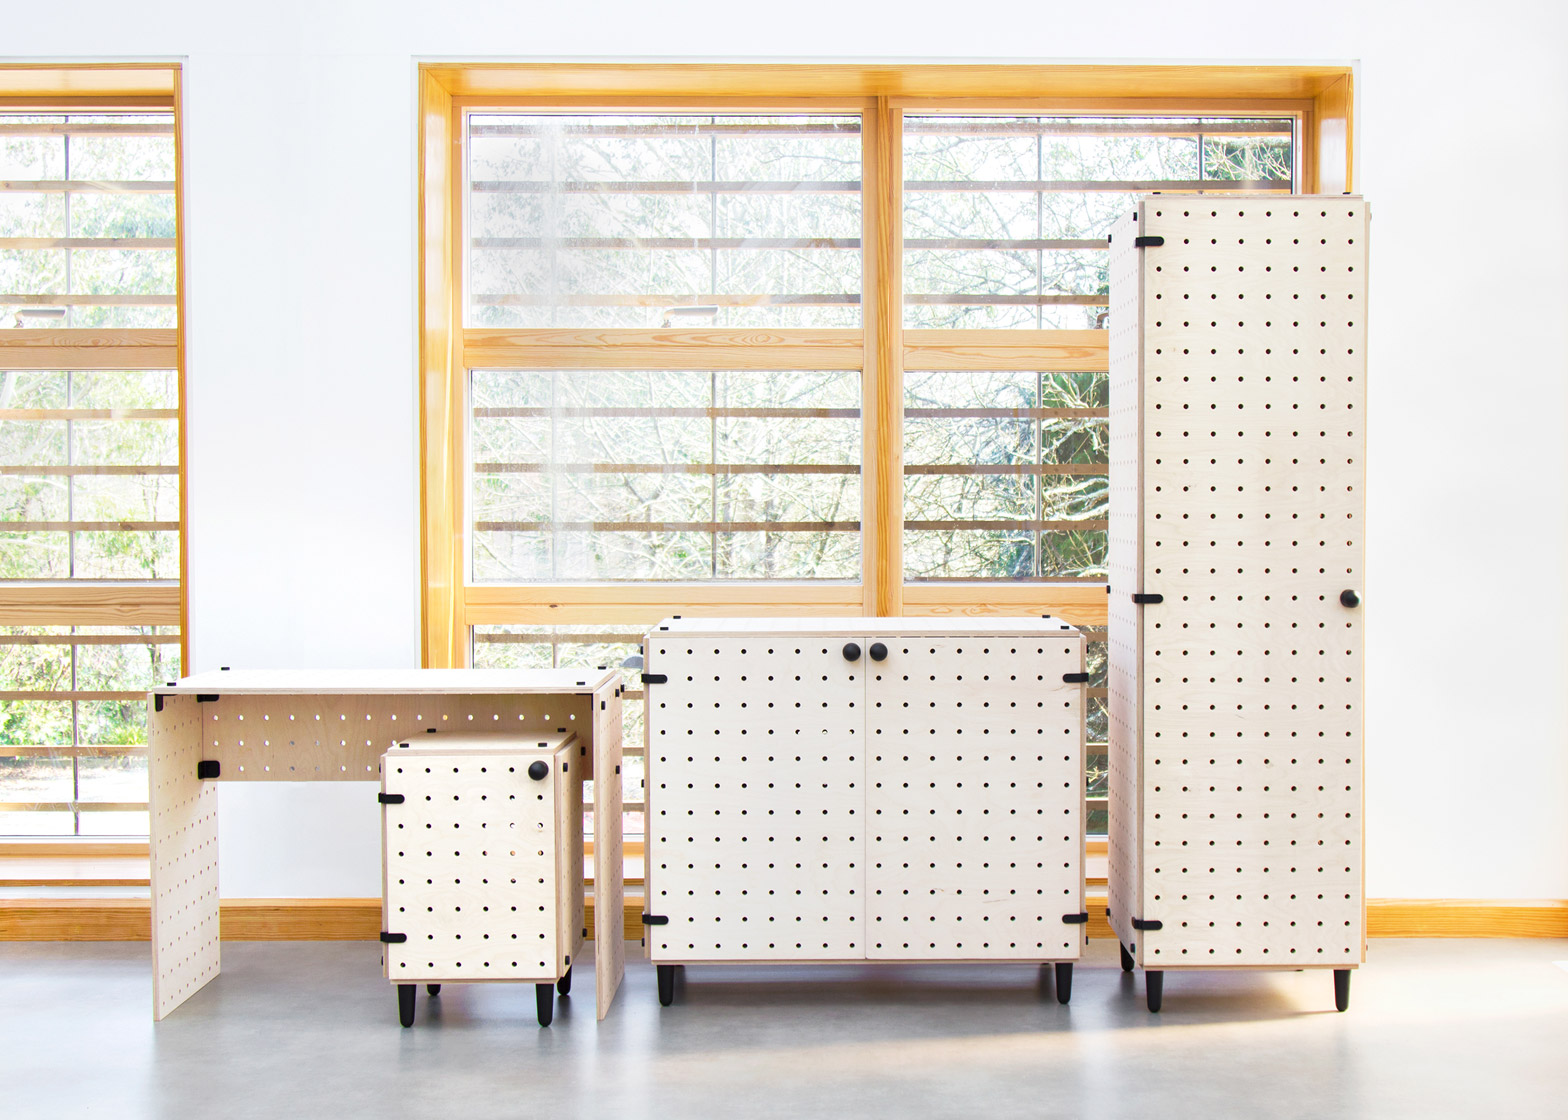 Move Often? This Flat-Pack Furniture System is Modular & Ultra-Portable